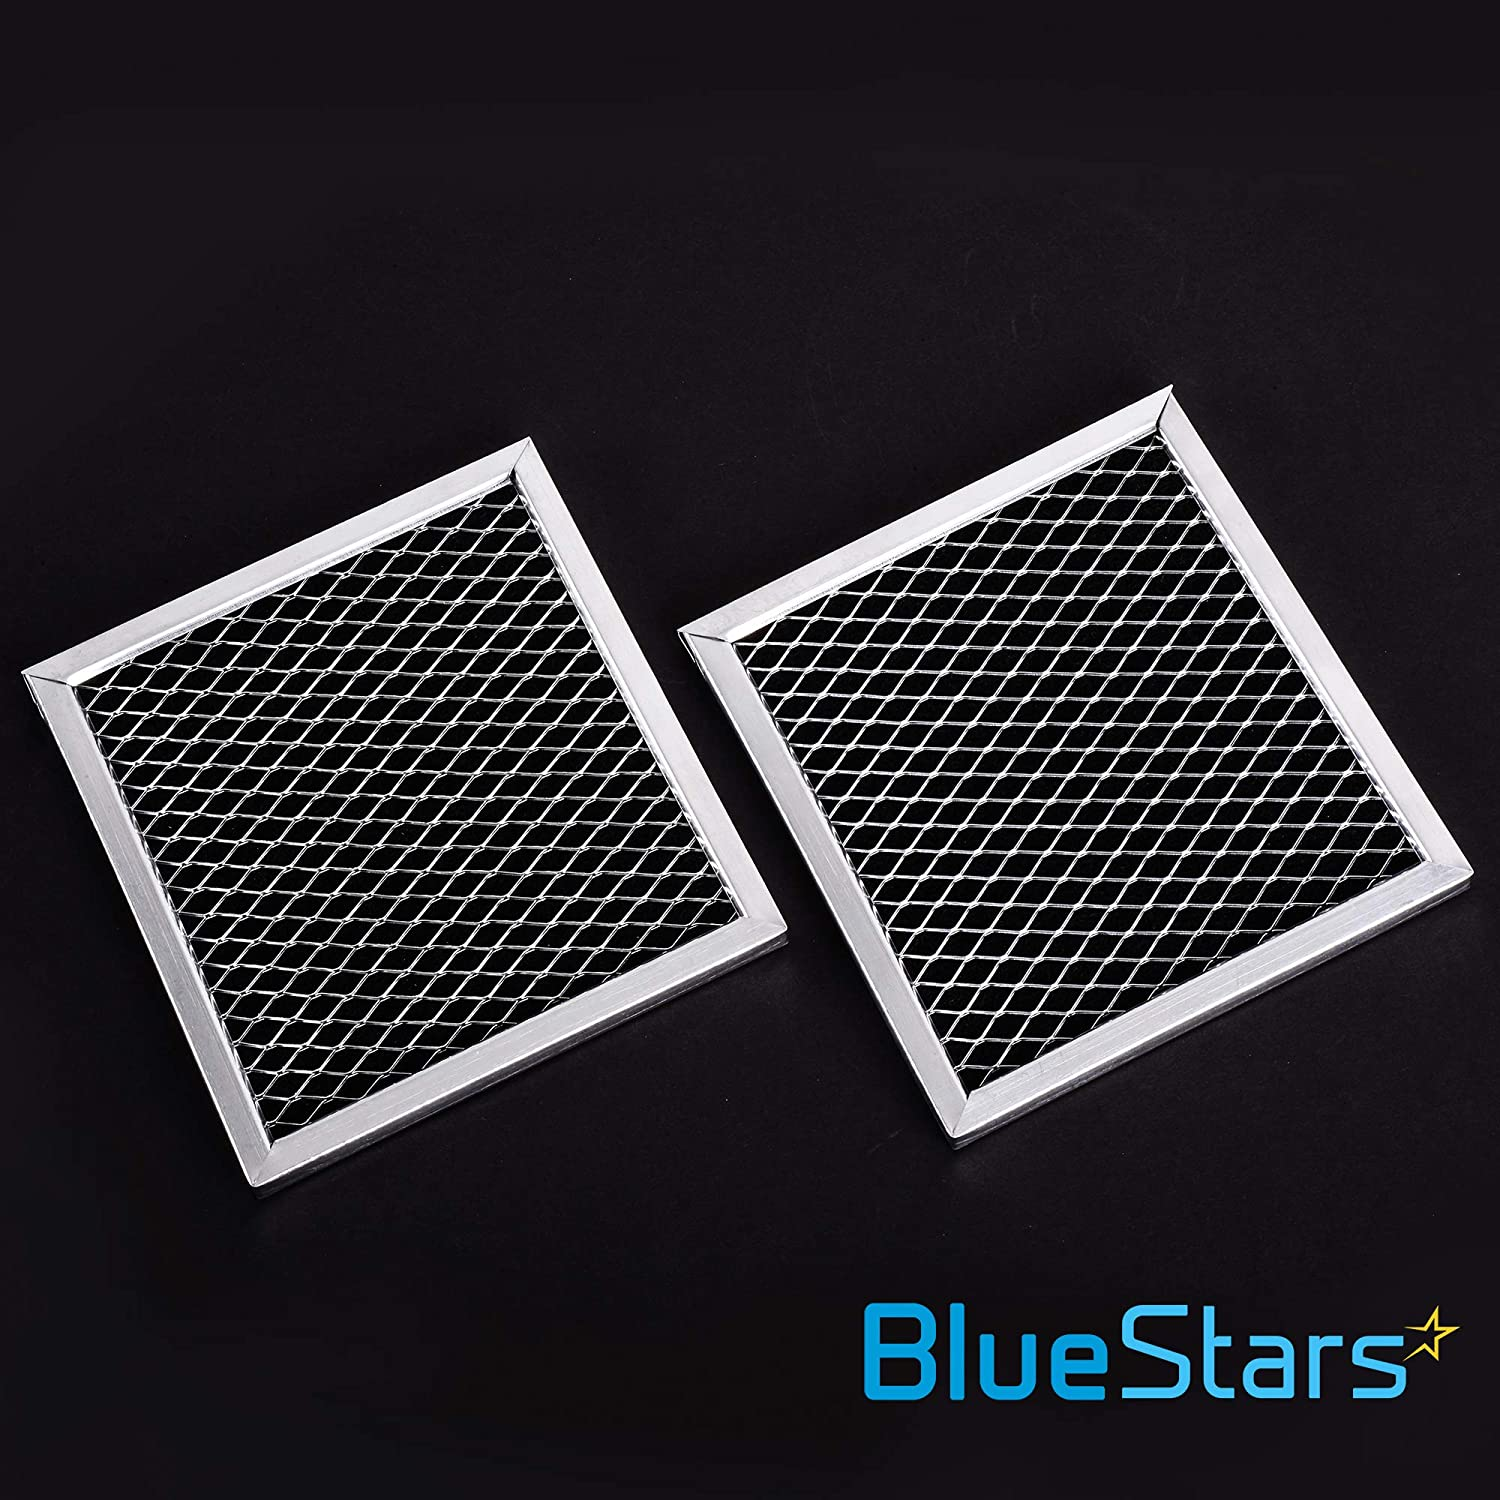 Replaces 8206230 AP4299744 PS1871363 Exact Fit For Whirlpool /& Maytag Microwaves Ultra Durable 8206230A Microwave Charcoal Filter Replacement part by Blue Stars PACK OF 3